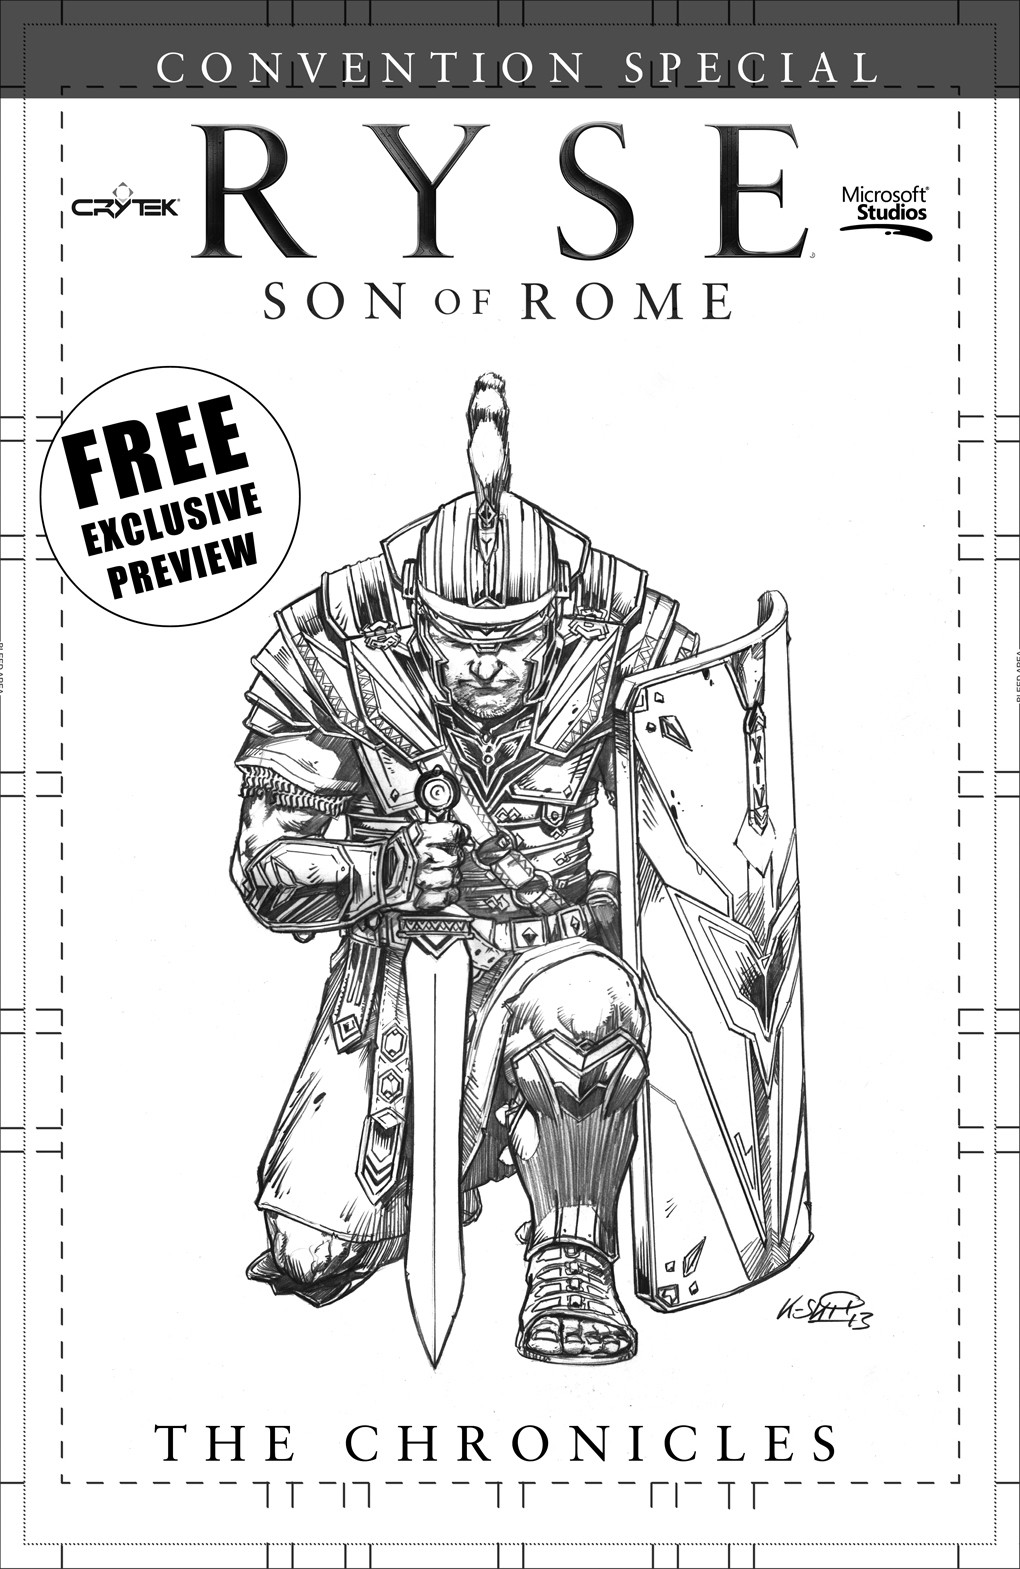 Klaus scherwinski coverryse ashcan mockup1low